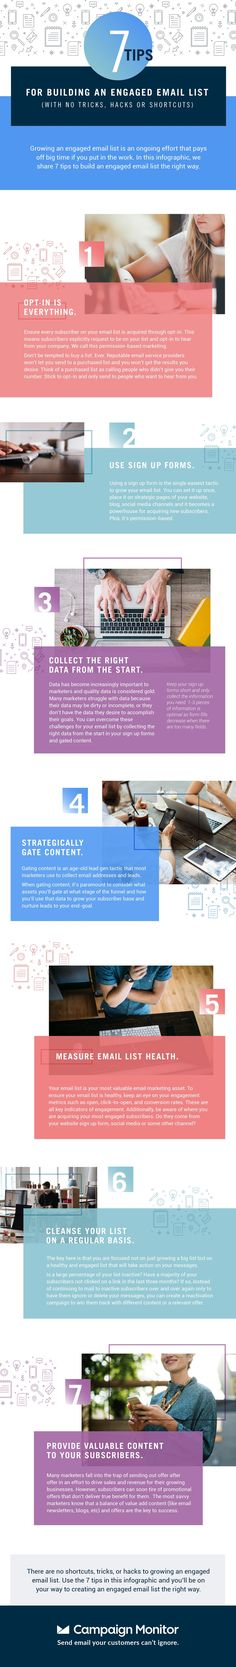 7 Tips for Building an Engaged Email List - #infographic